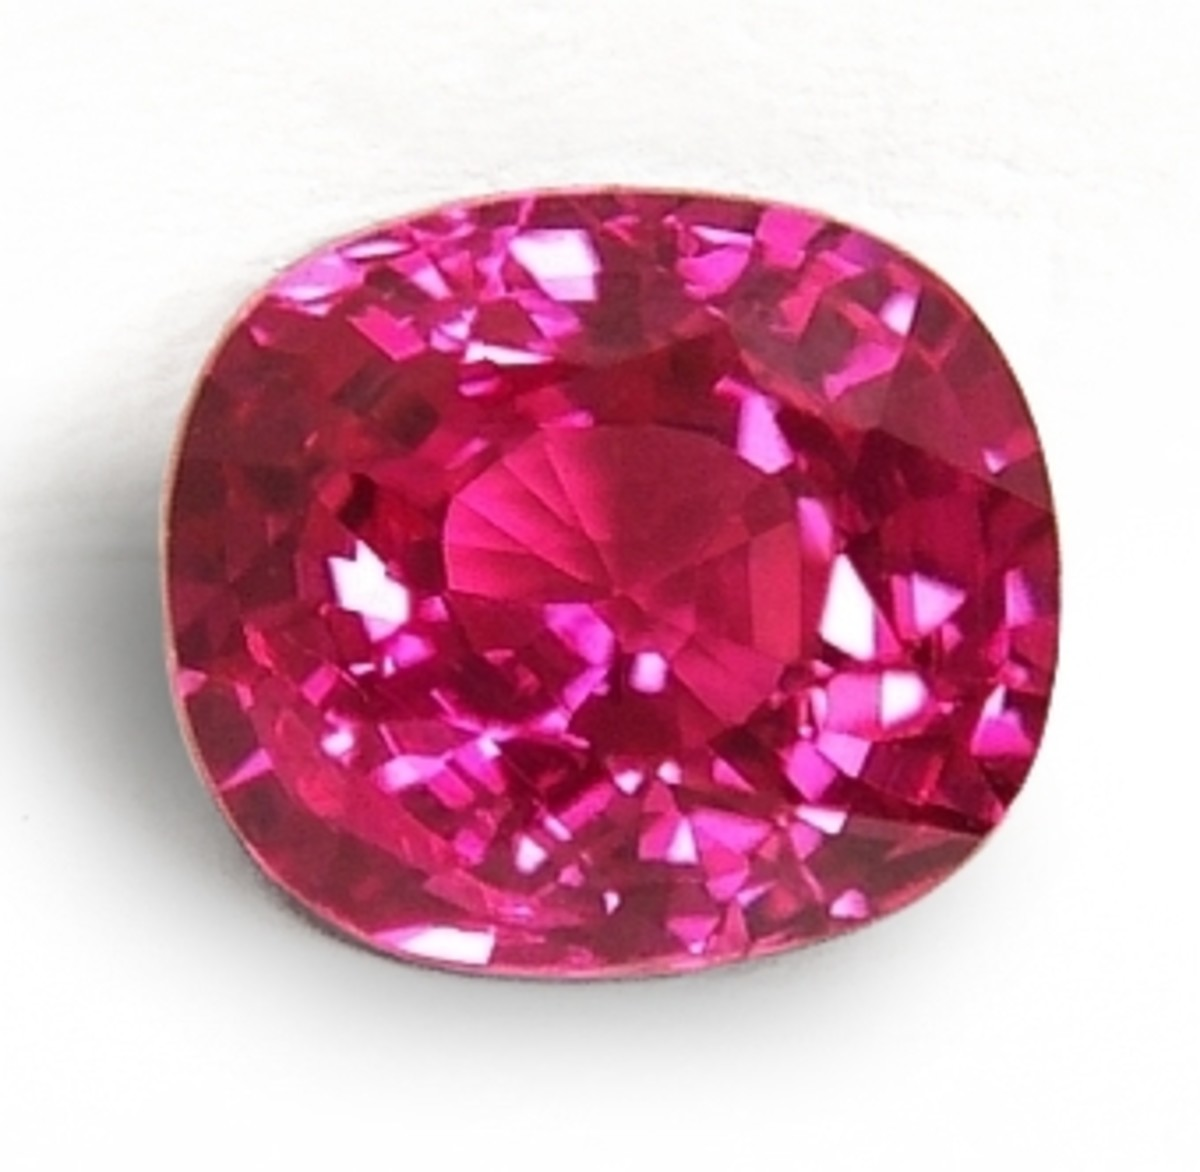 Benefits Of Ruby Gemstone | HubPages